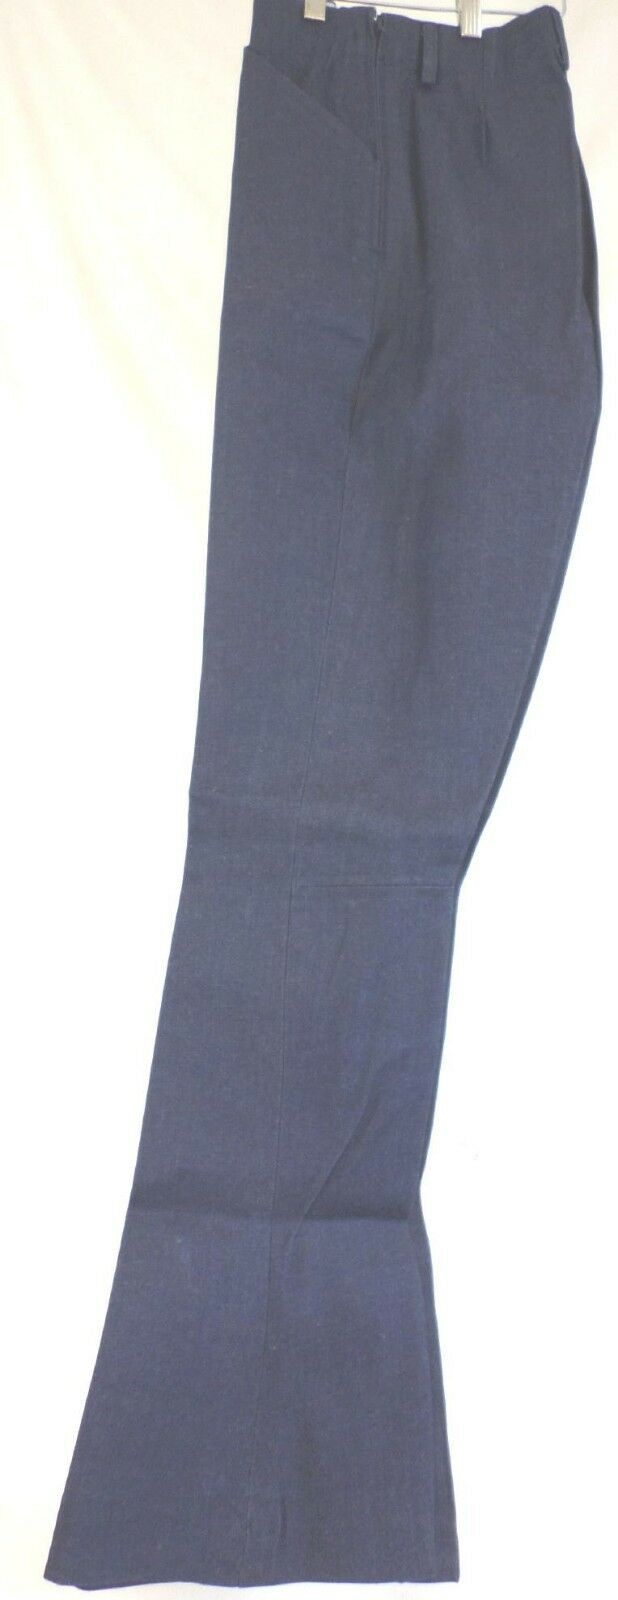 Reed Hill Ladies Saddleseat Jod Pants Navy Denim 12   28   long - USA